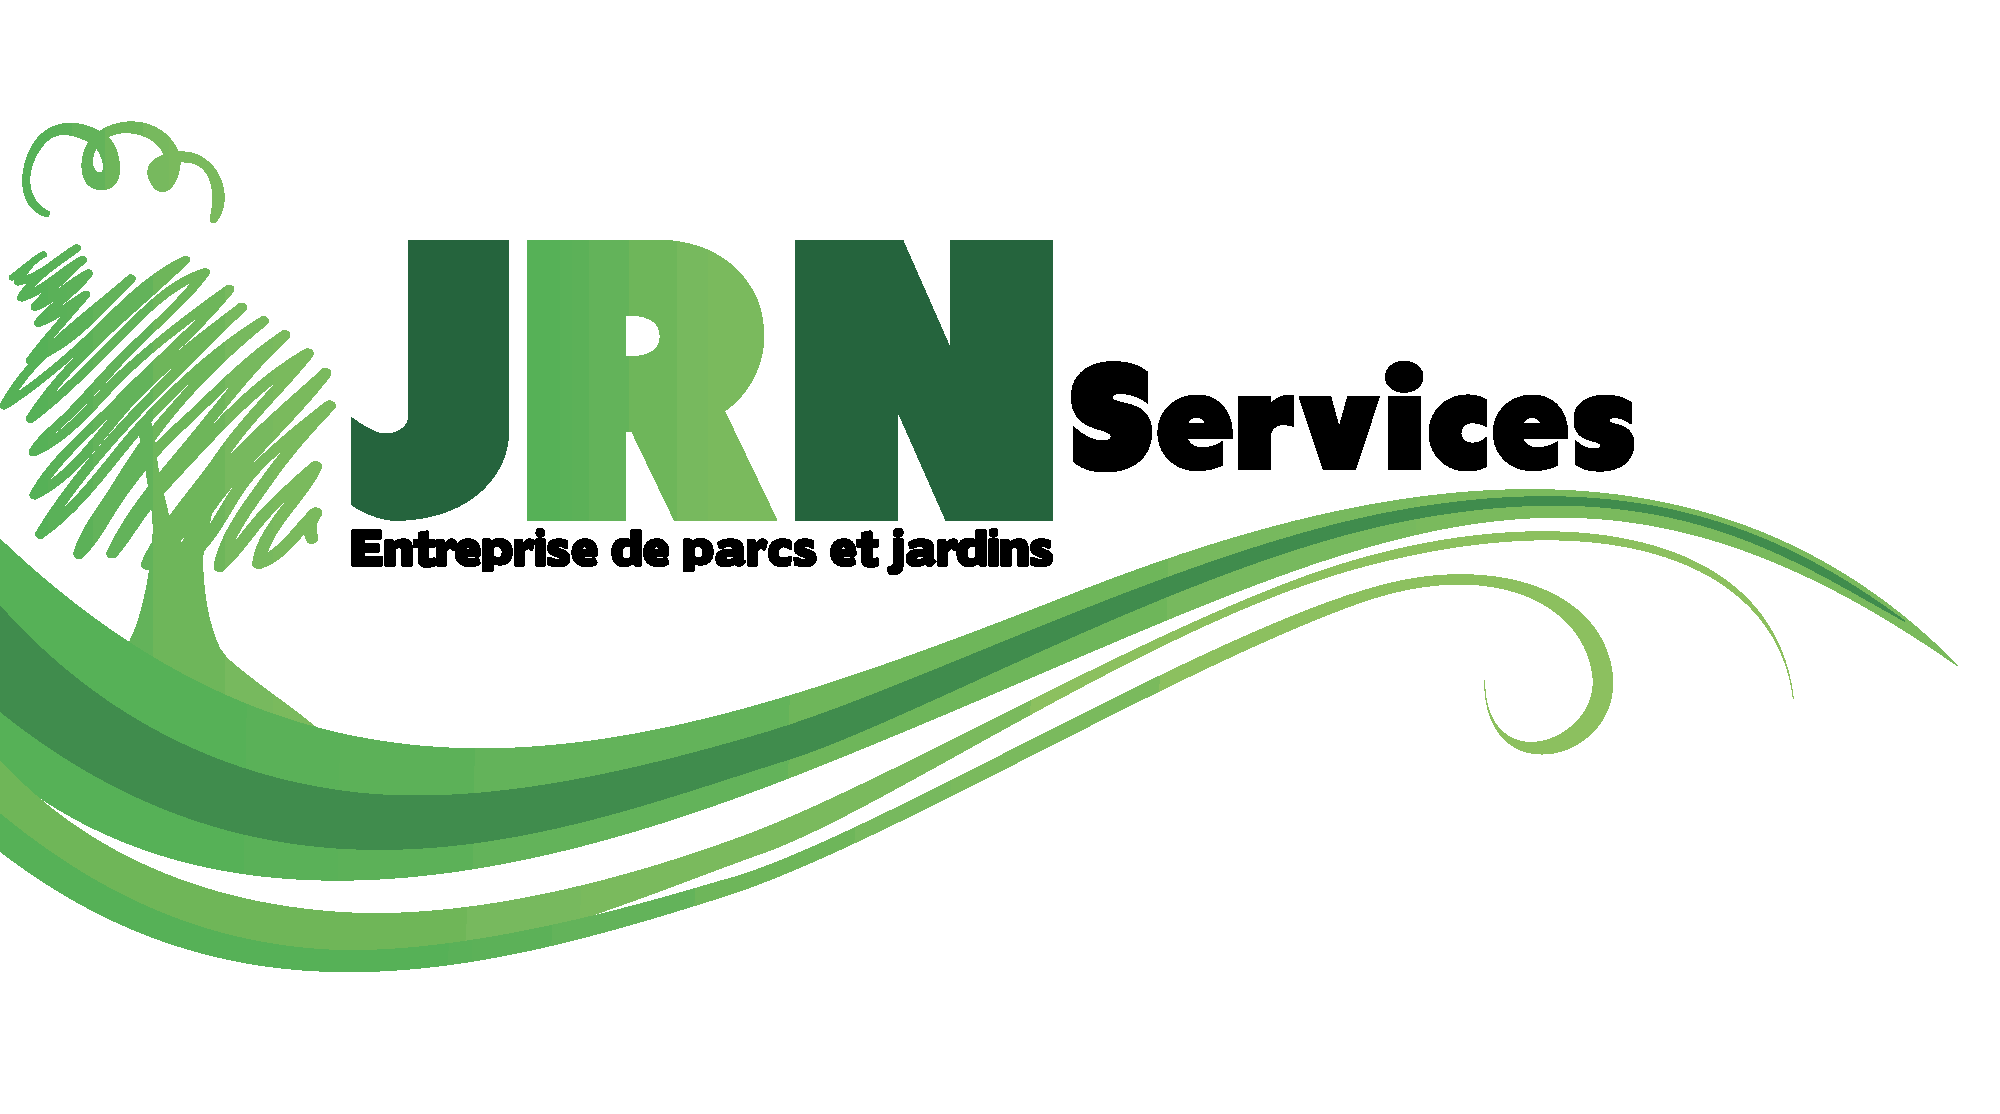 JRN Services